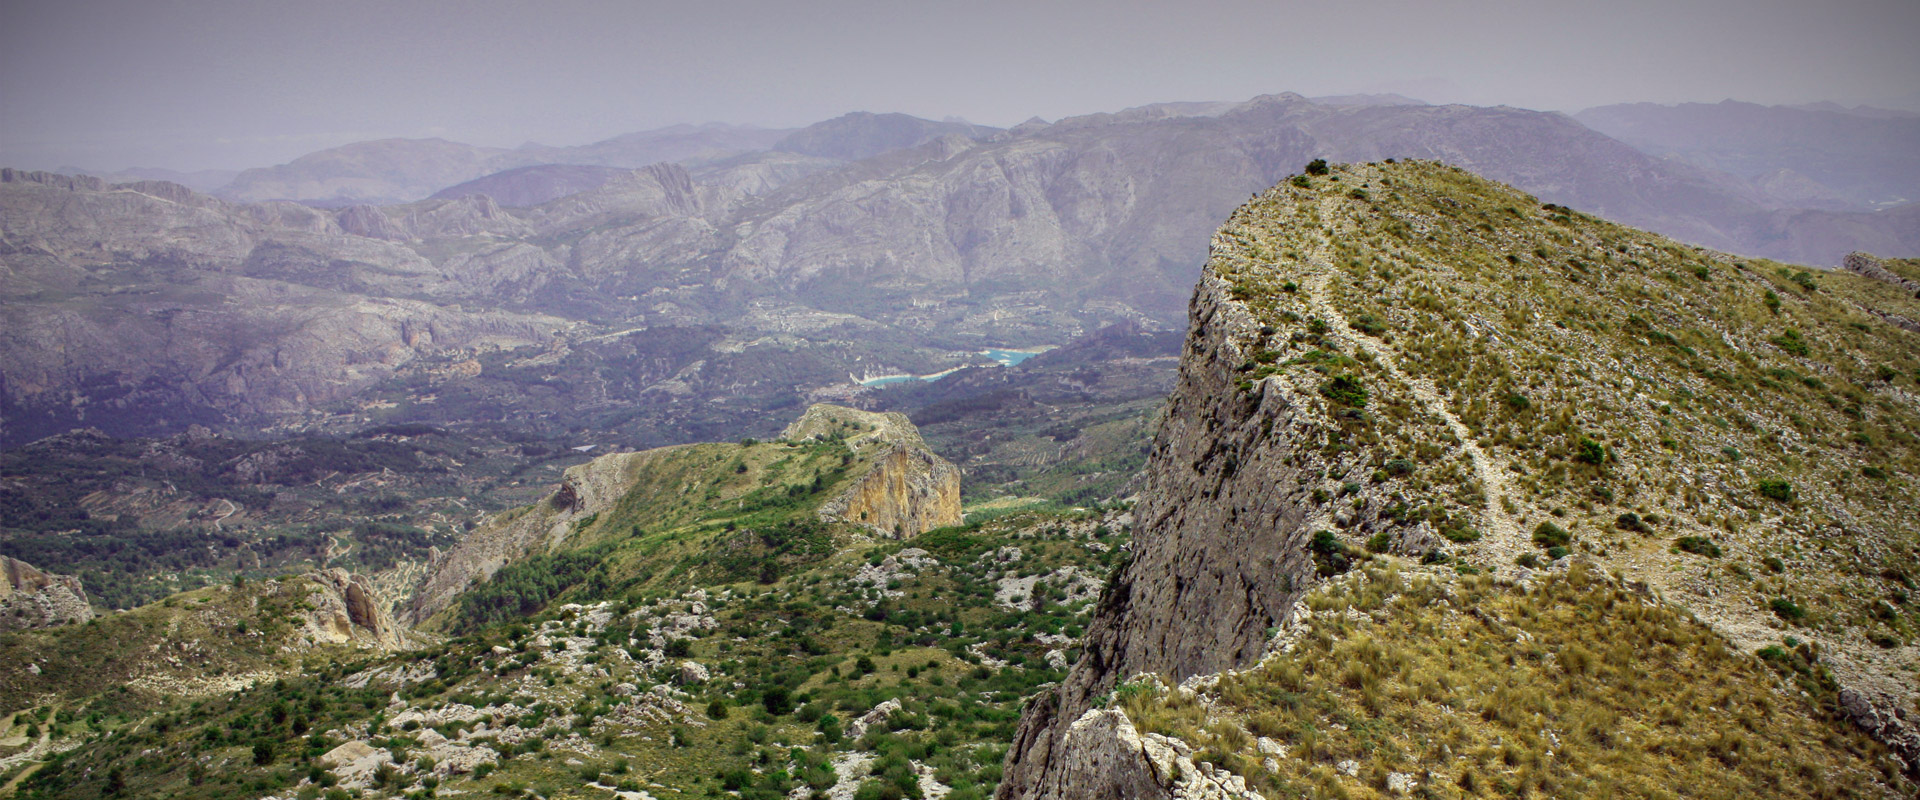 Paths in Aitana Mountain with views of the Guadalest Valley